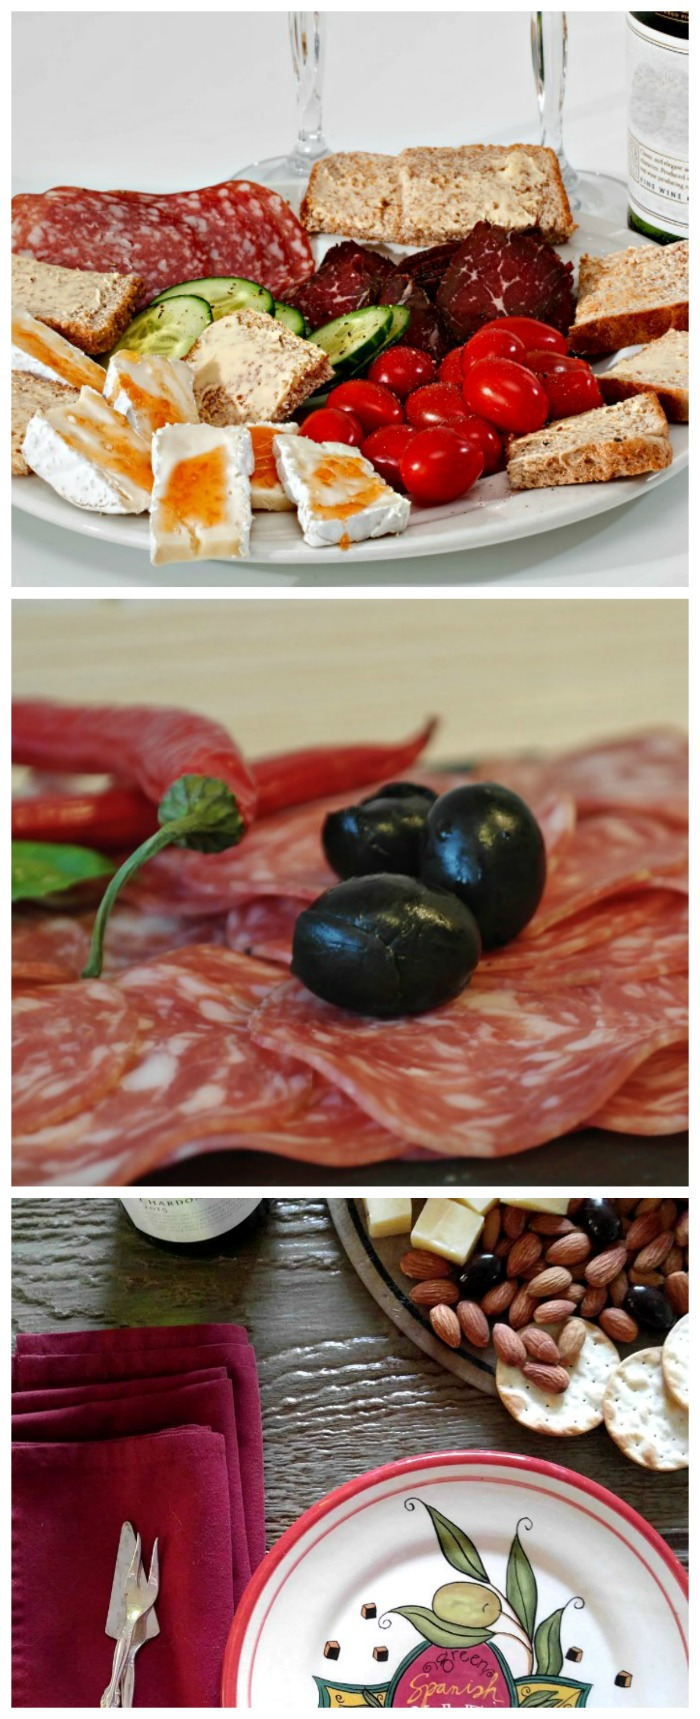 These Antipasti platter tips will help you choose and display the items to make your party platter one that guests will really dig into.